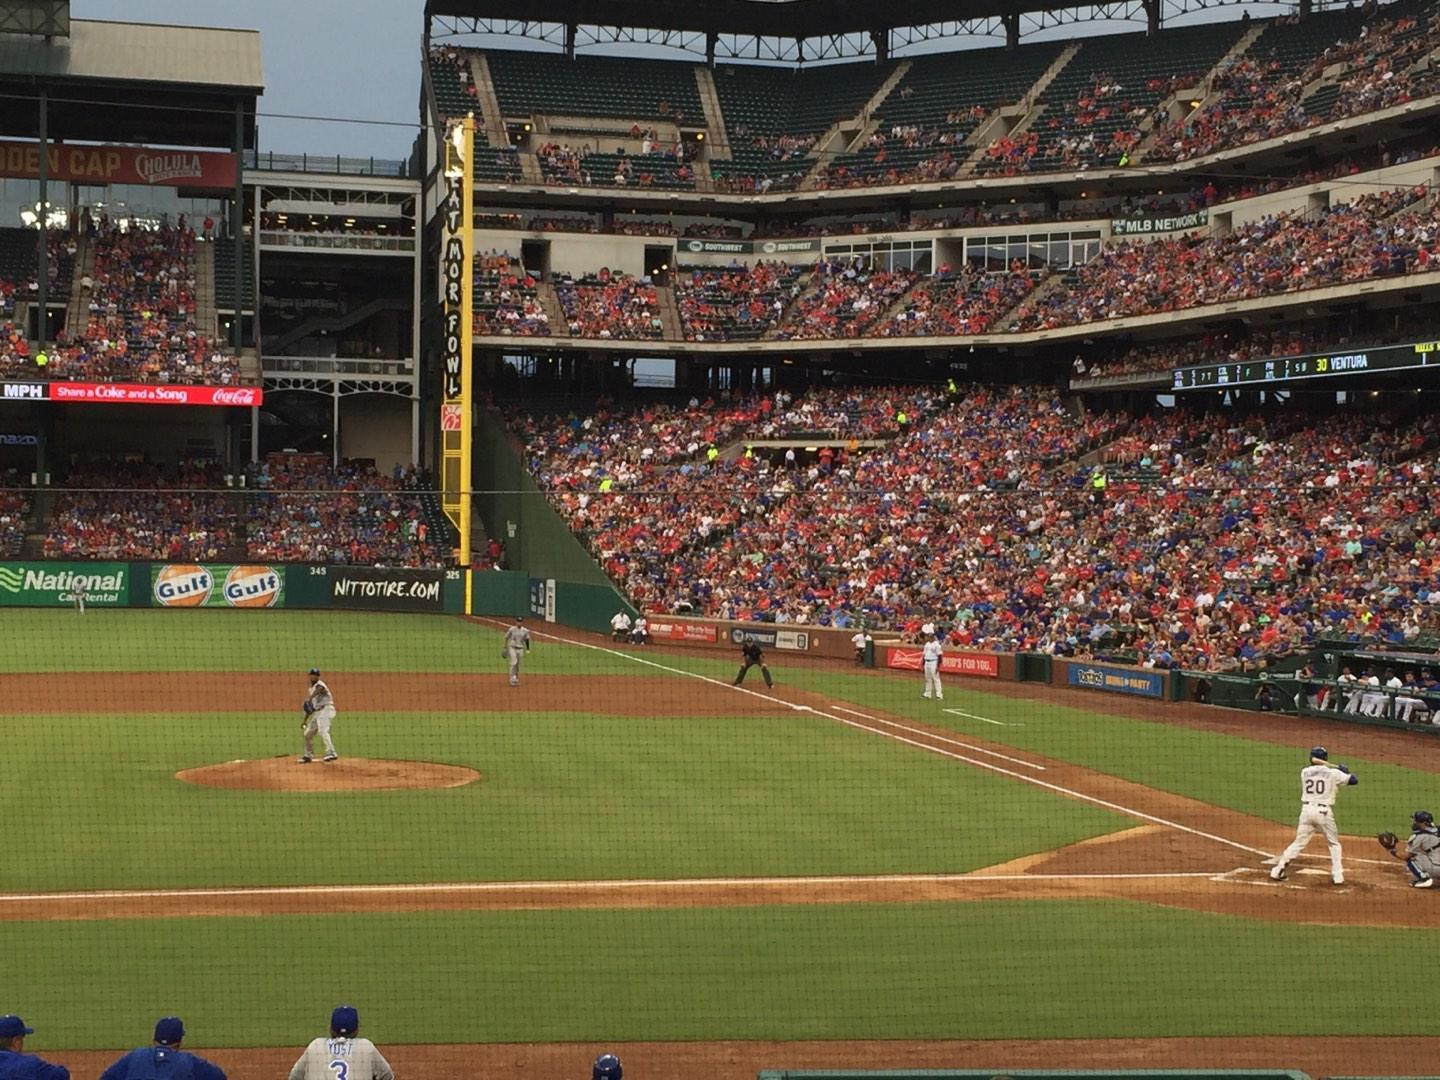 Globe Life Park in Arlington Section 20 Row 16 Seat 6